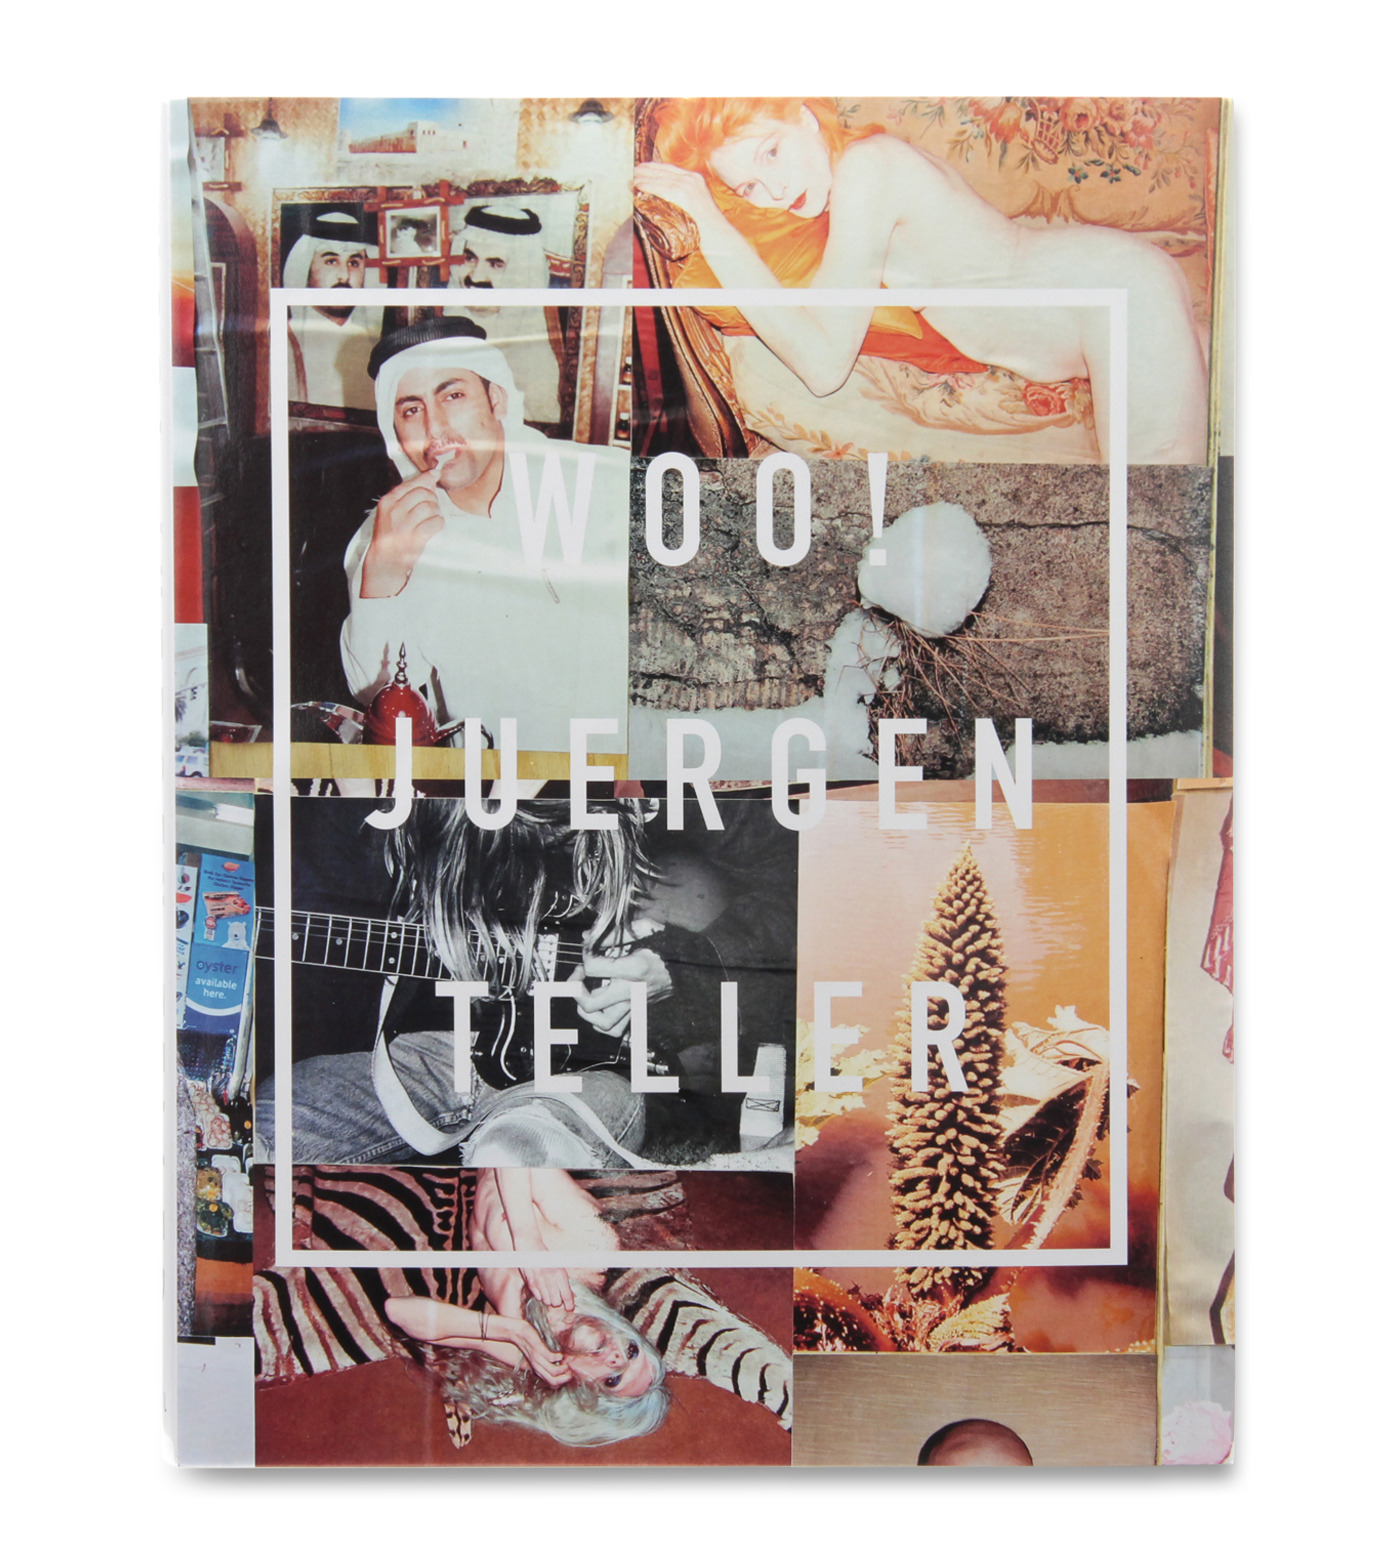 ArtBook(アートブック)のJuergen Teller: Woo!-MULTI COLOUR(インテリア/OTHER-GOODS/interior/OTHER-GOODS)-86930-652-0-9 拡大詳細画像1